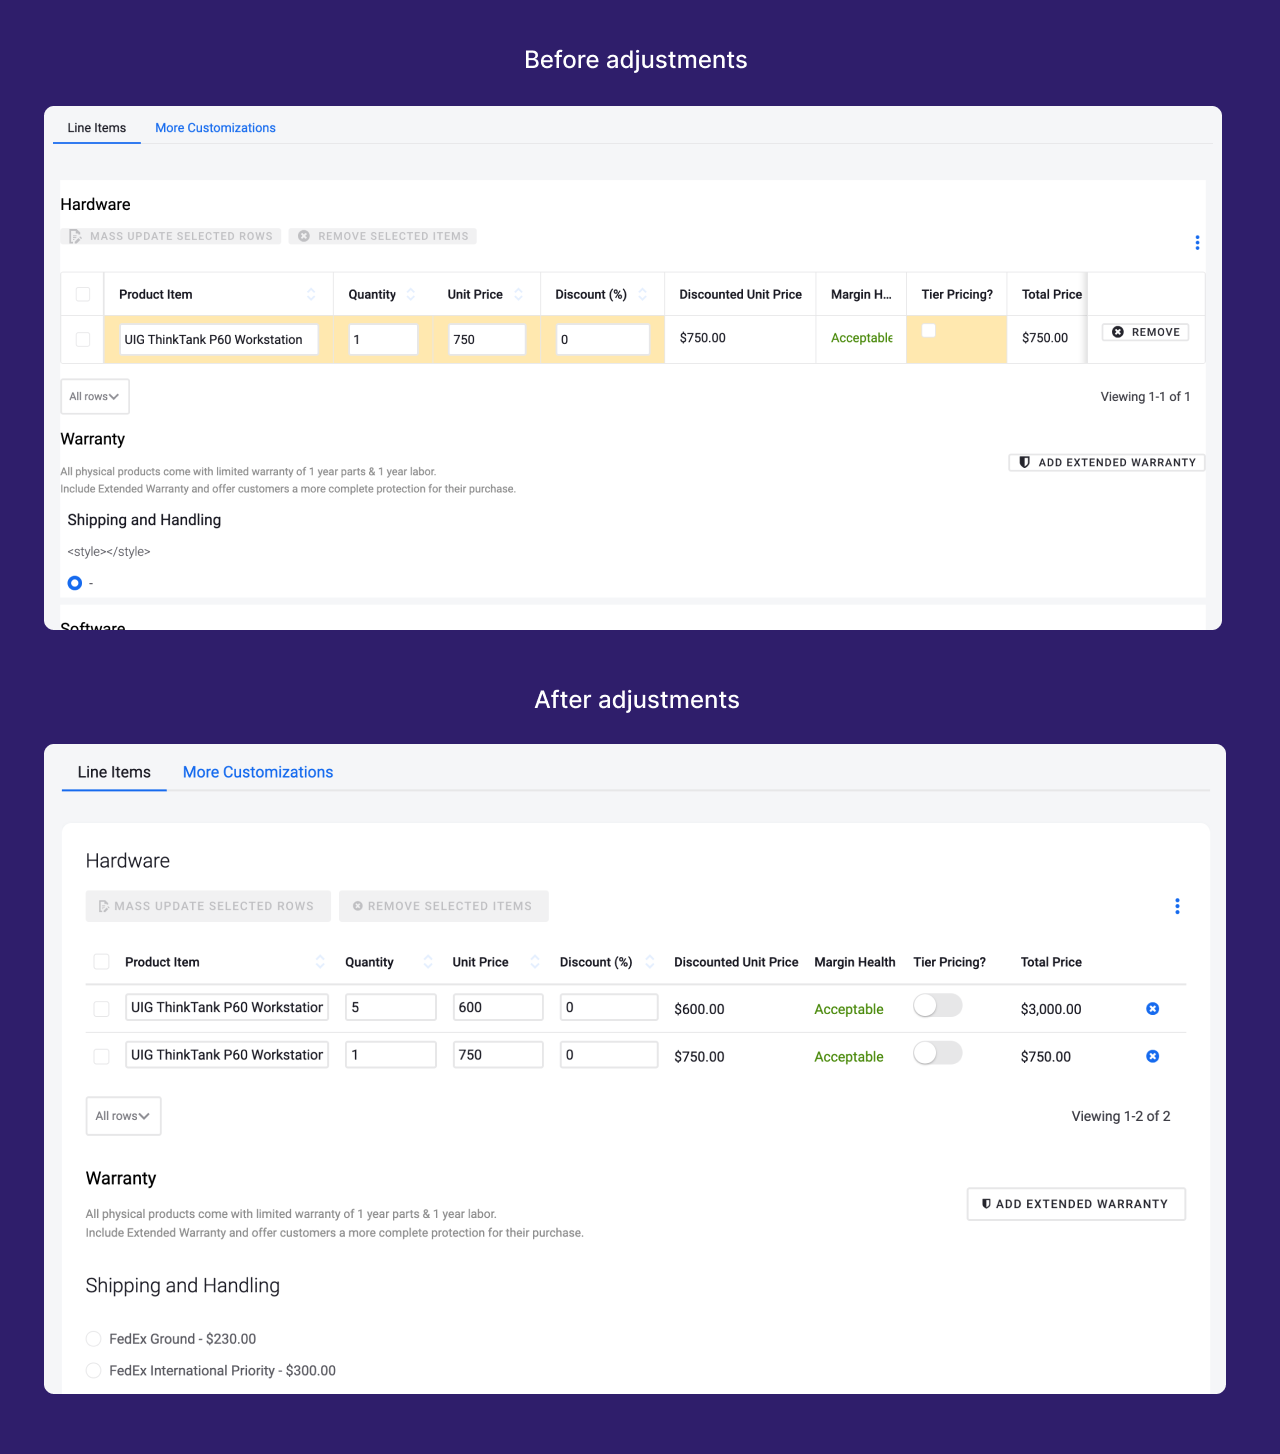 A screenshot showing a page before and after styling adjustments were made.